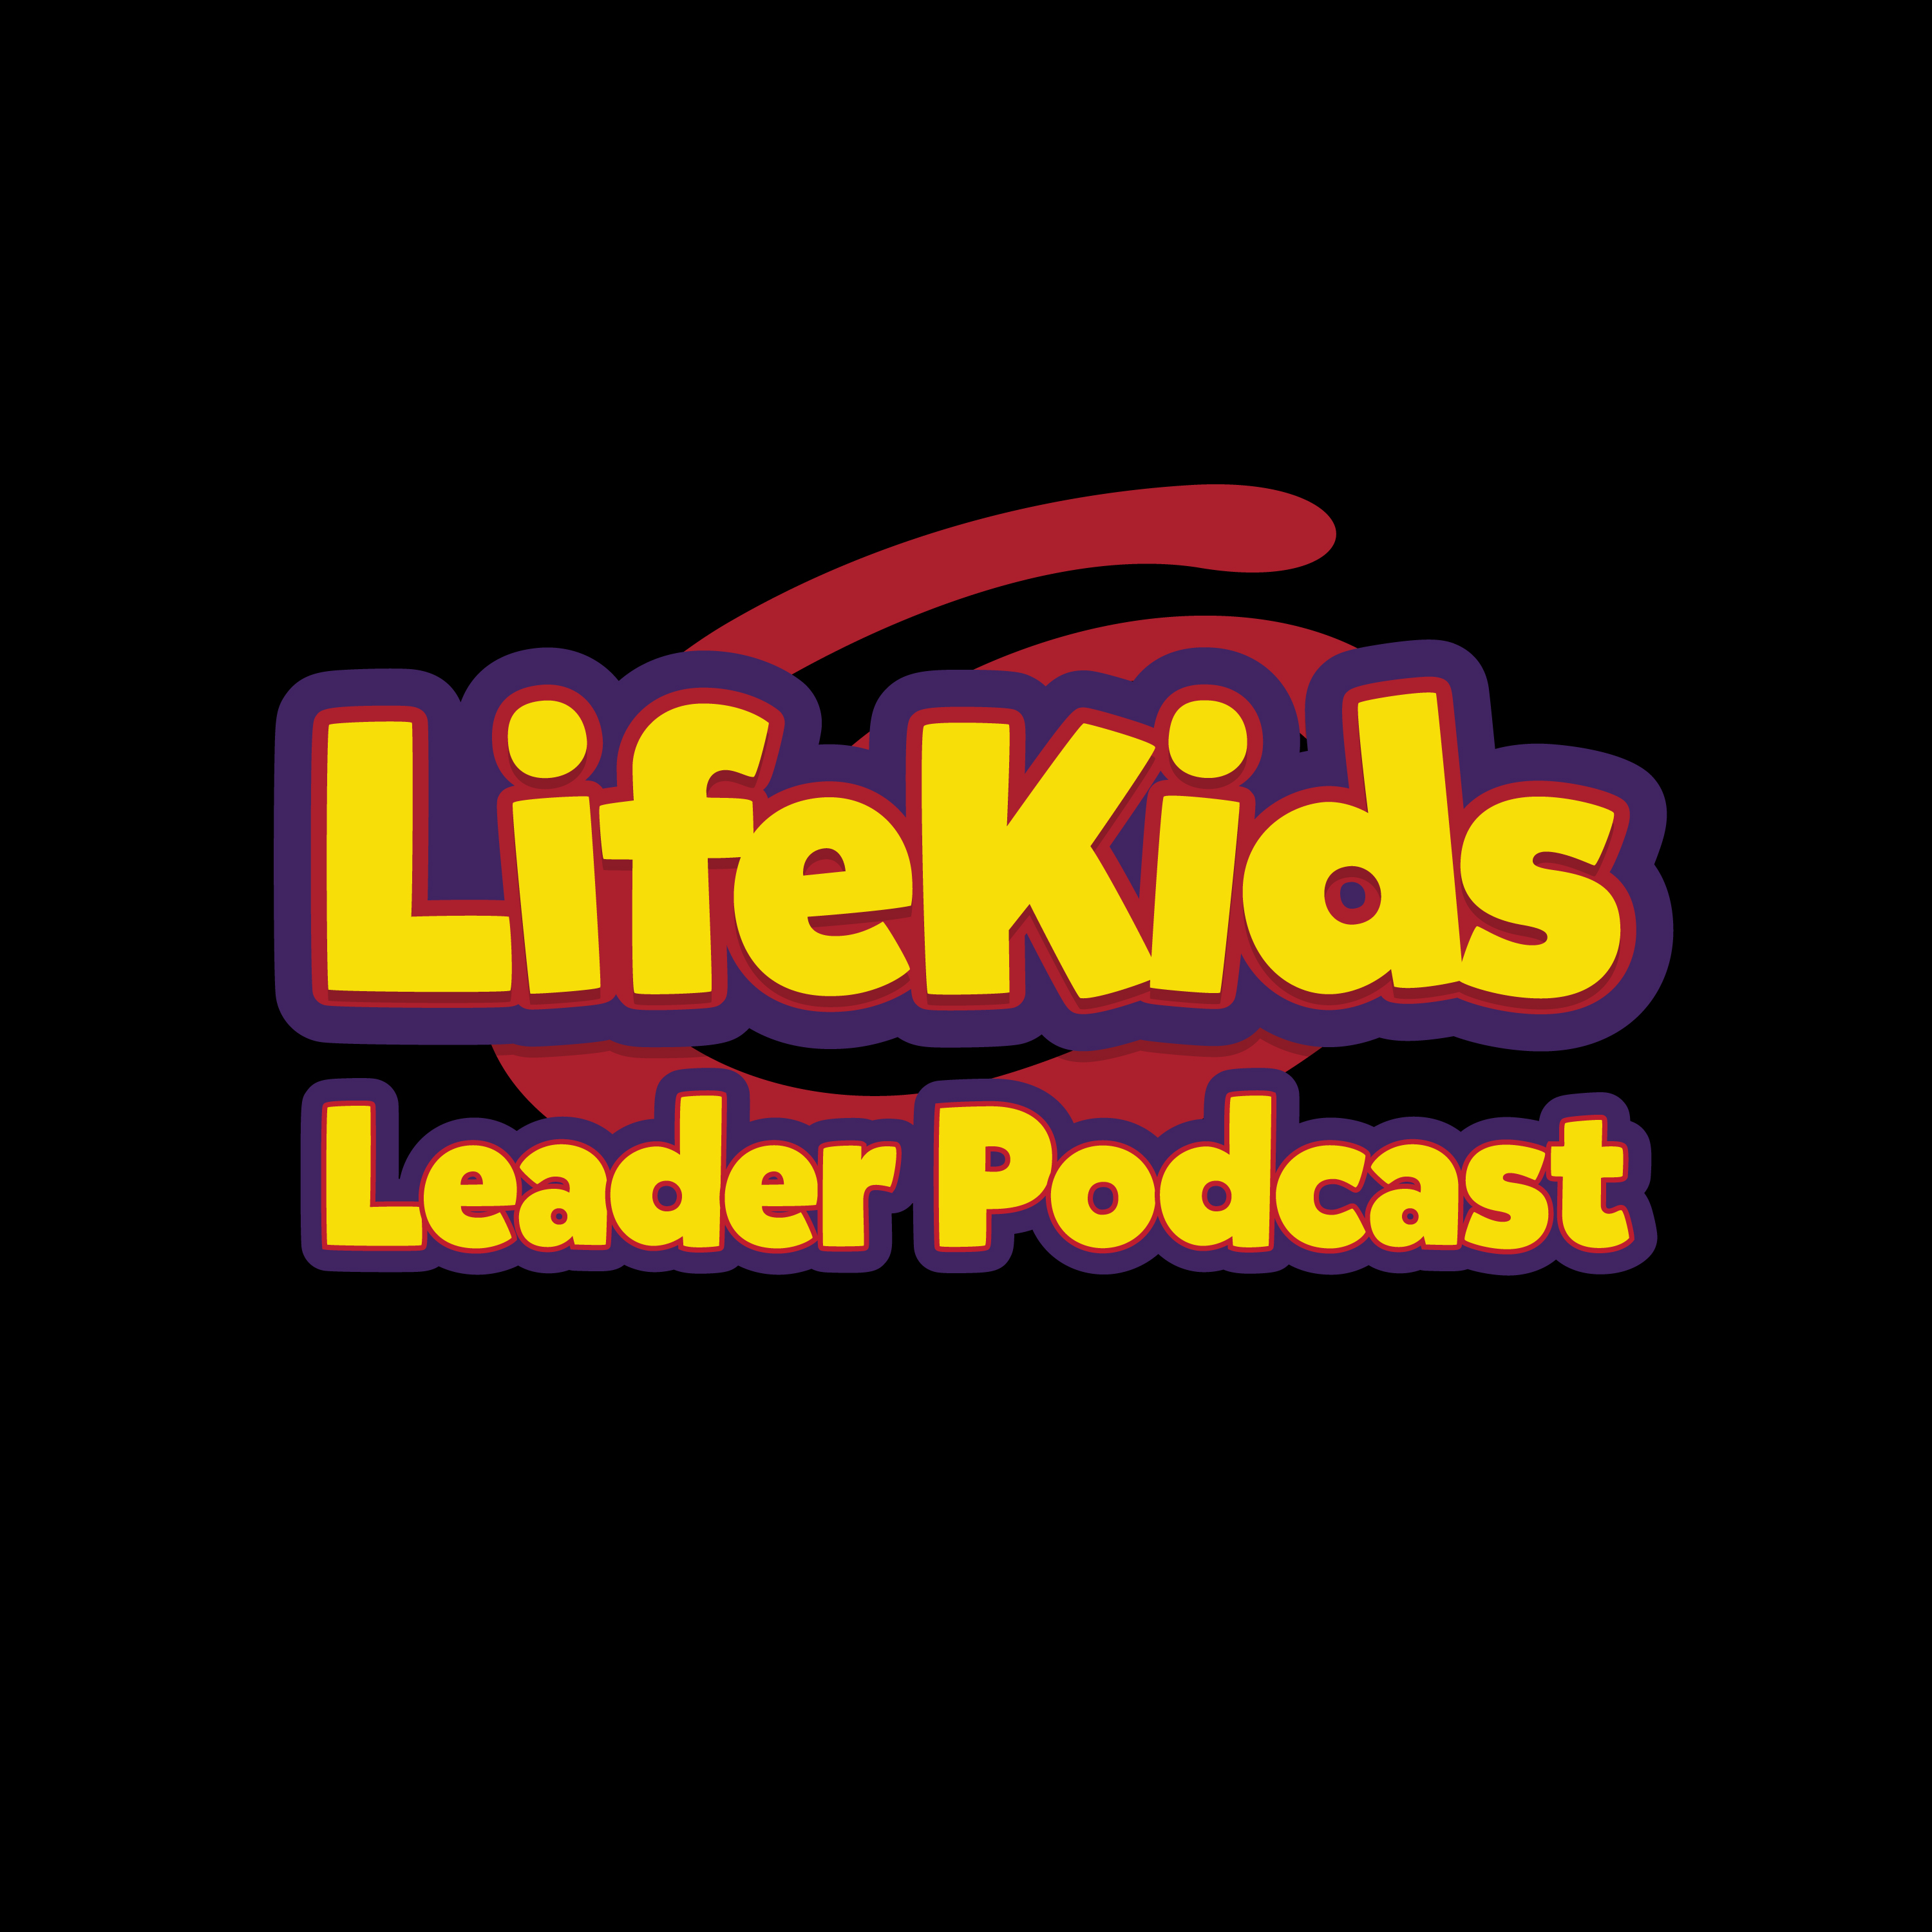 Being a LifeKids Leader During COVID-19